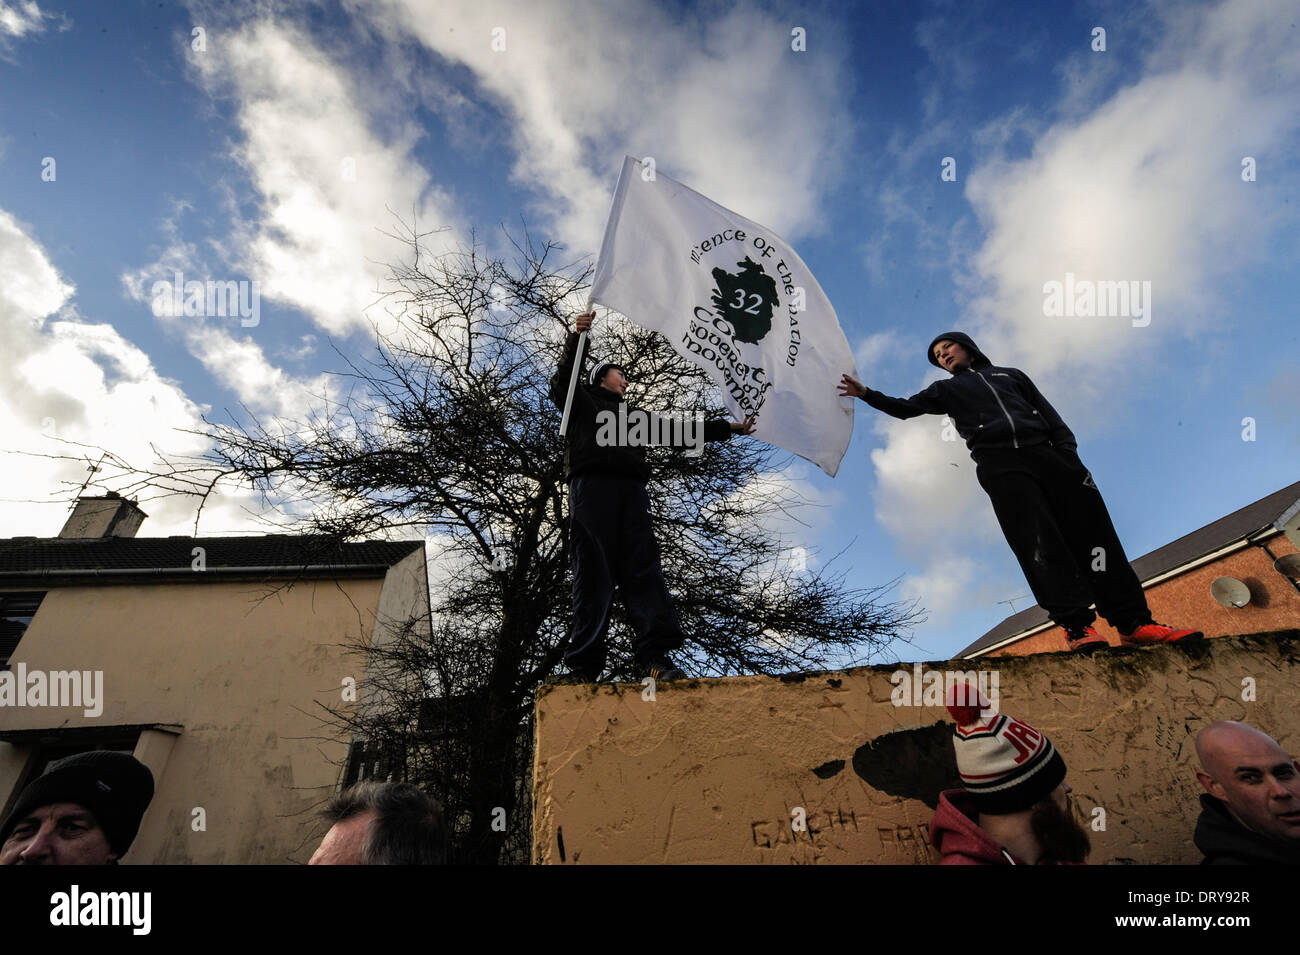 Youths with flag, supporting the dissident republican 32 County Sovereignty Movement at the 42nd anniversary Bloody Sunday march - Stock Image